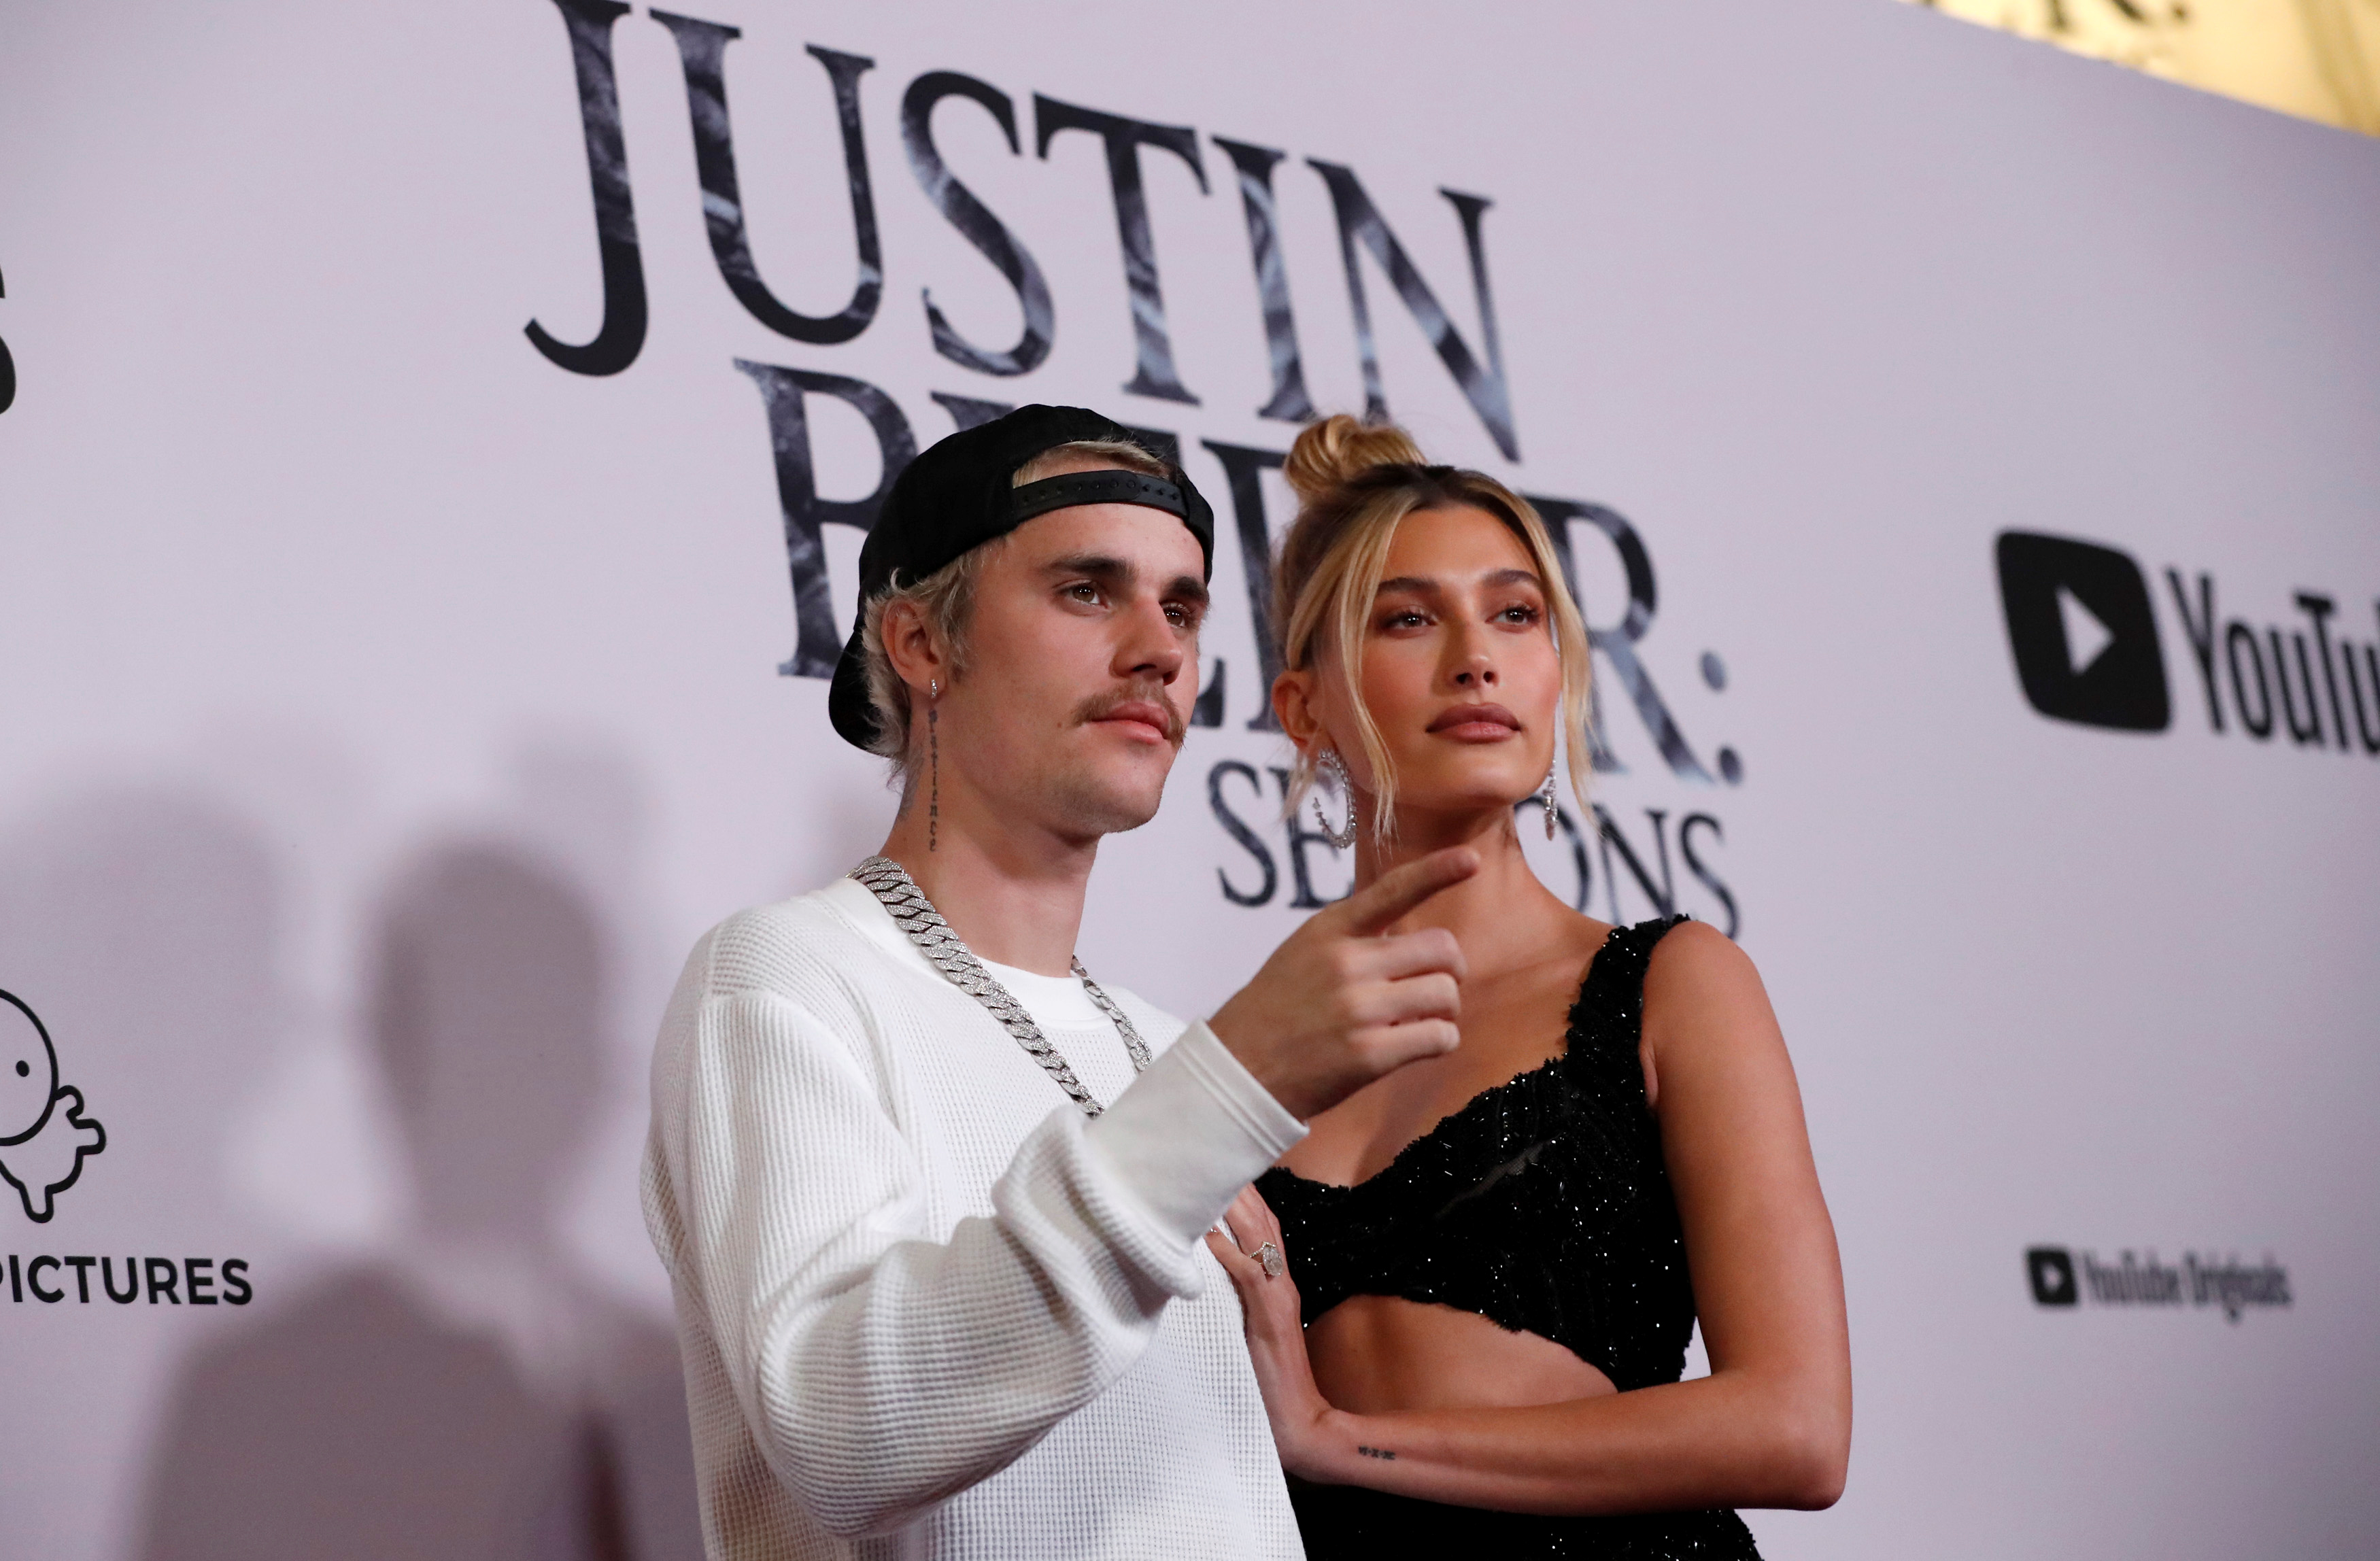 """Singer Bieber and his wife Hailey Baldwin pose at the premiere for the documentary television series """"Justin Bieber: Seasons"""" in Los Angeles"""